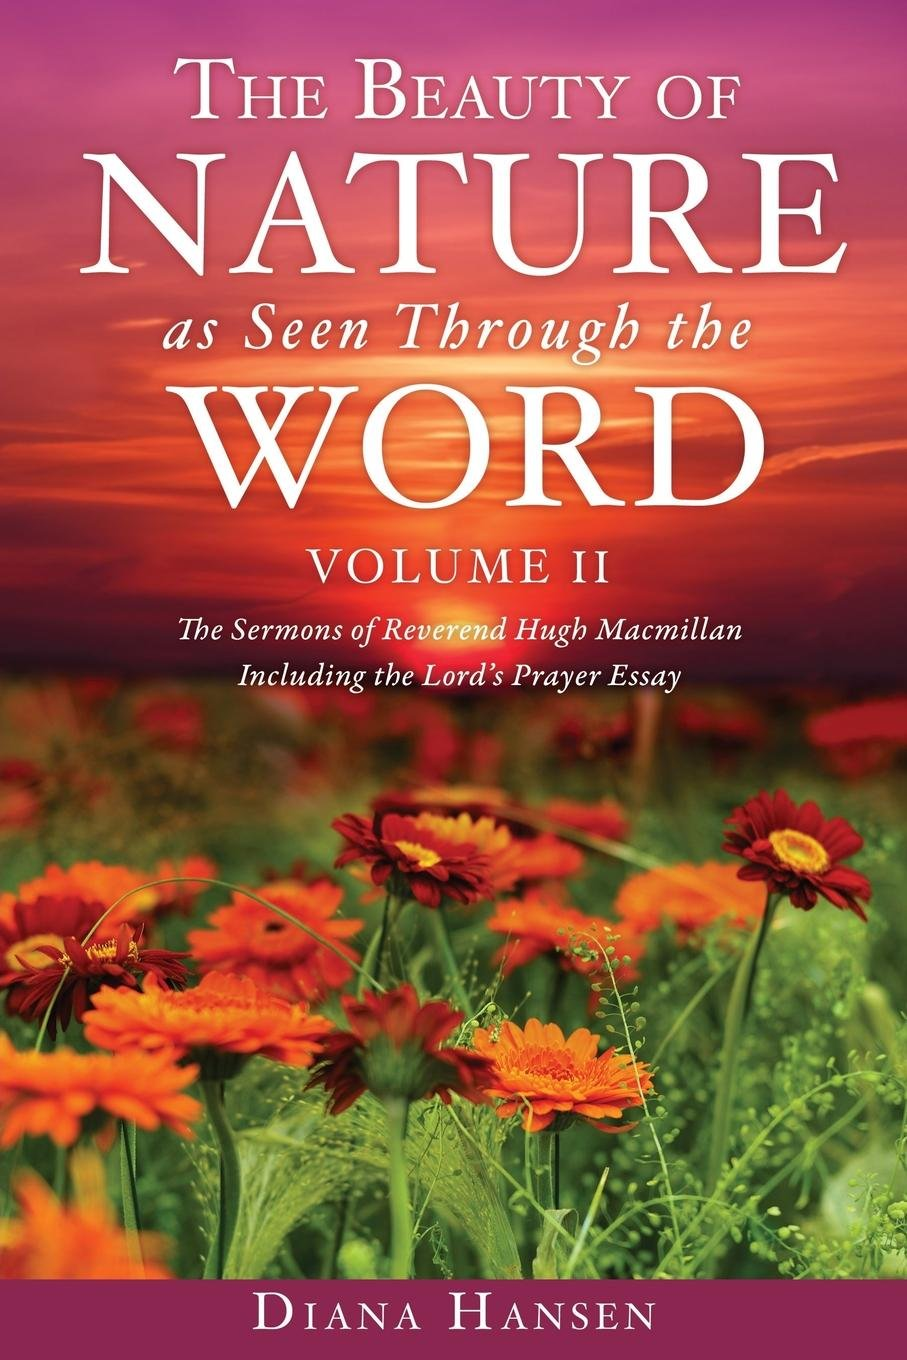 The Beauty of Nature as Seen Through the Word the Sermons of Reverend Hugh Macmillan, 1833-1903 Volume II - Including the Lord's Prayer Essay Compilation and Introduction by Diana Hansen pdf